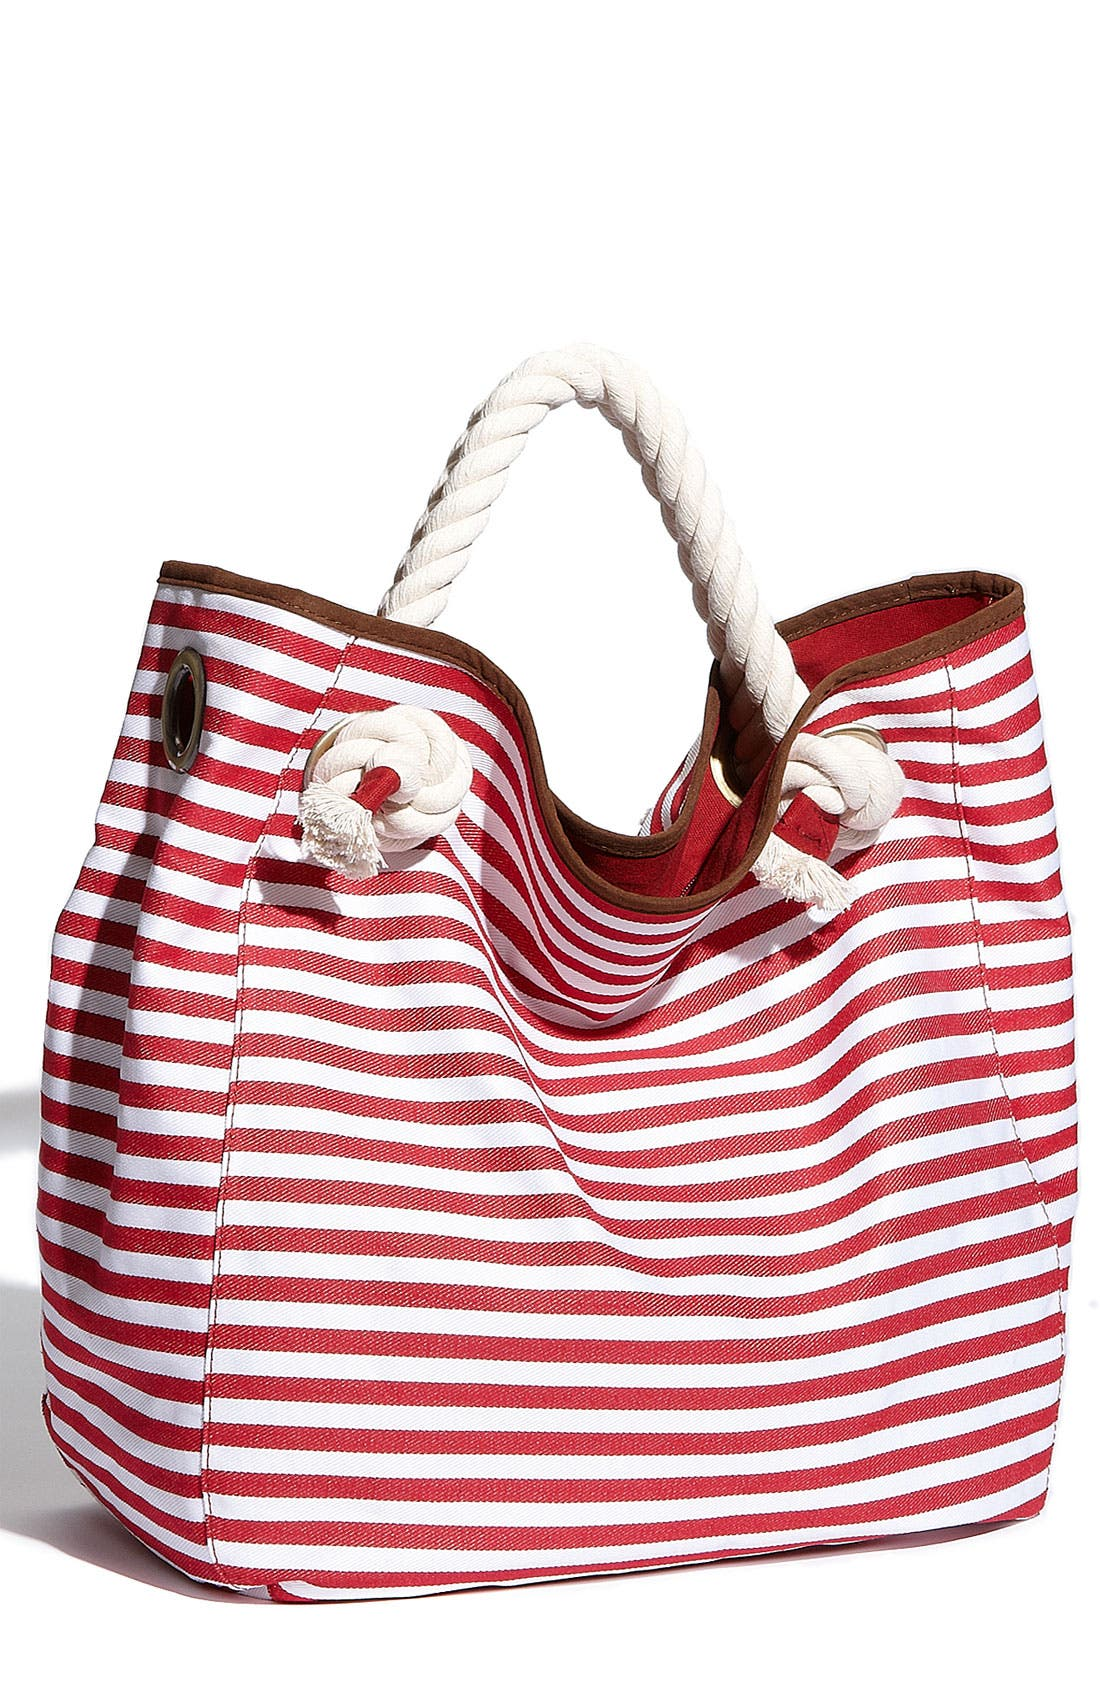 Alternate Image 1 Selected - Street Level Nautical Stripe Canvas Tote